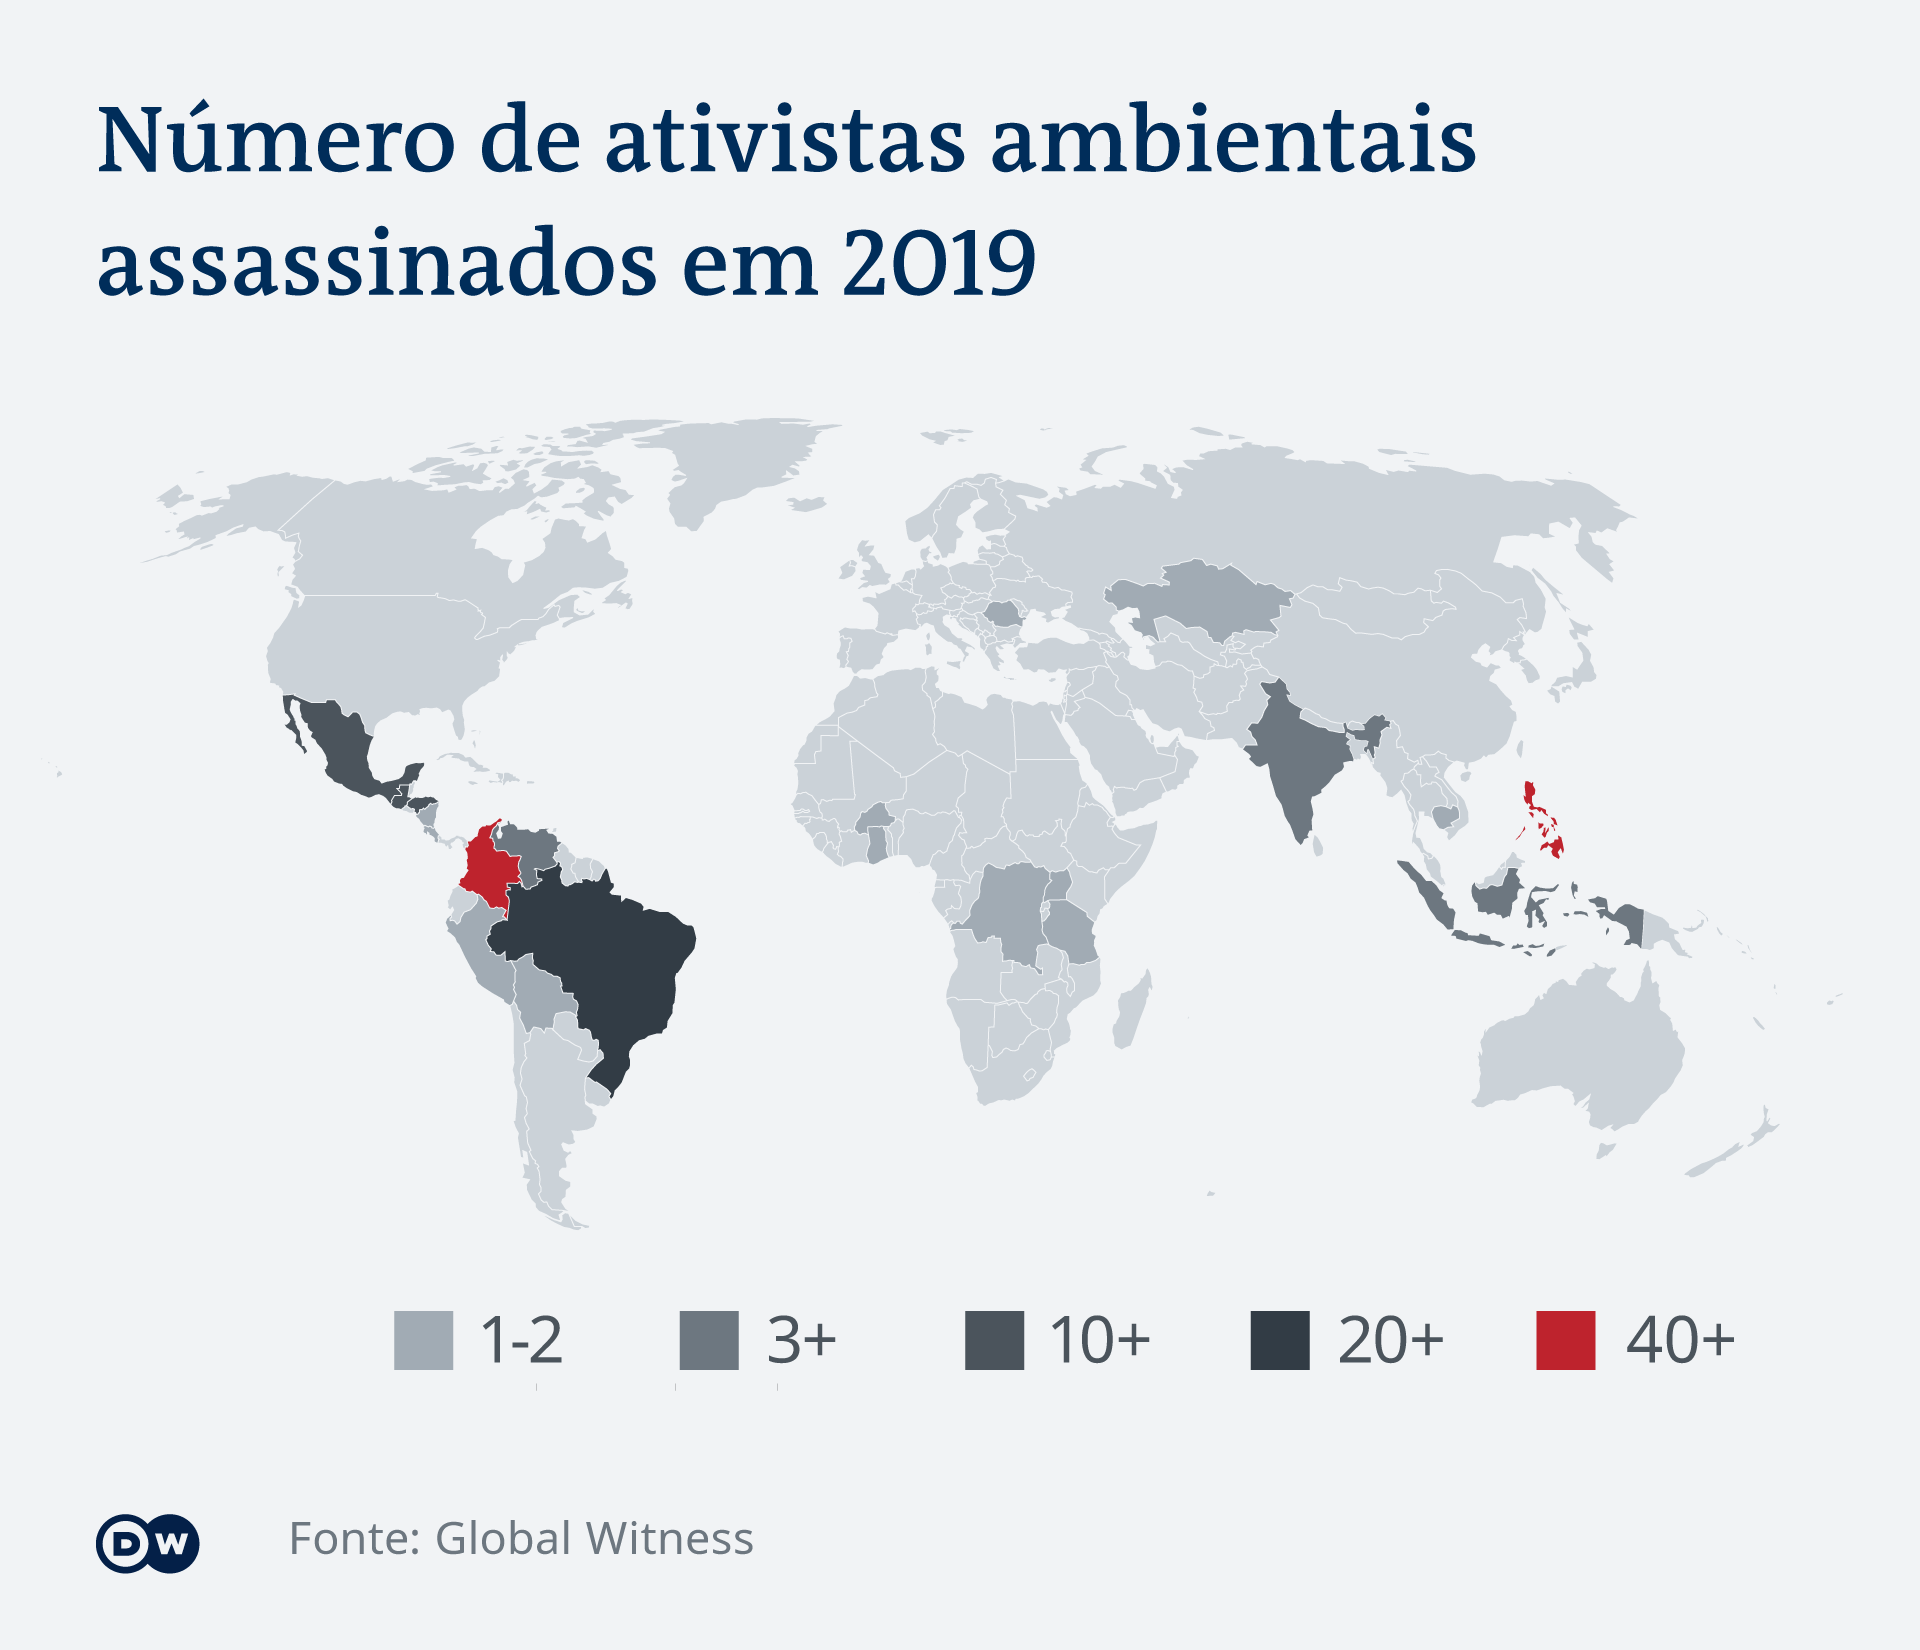 Número de ativistas ambientais assassinados em 2019 - Global Witness